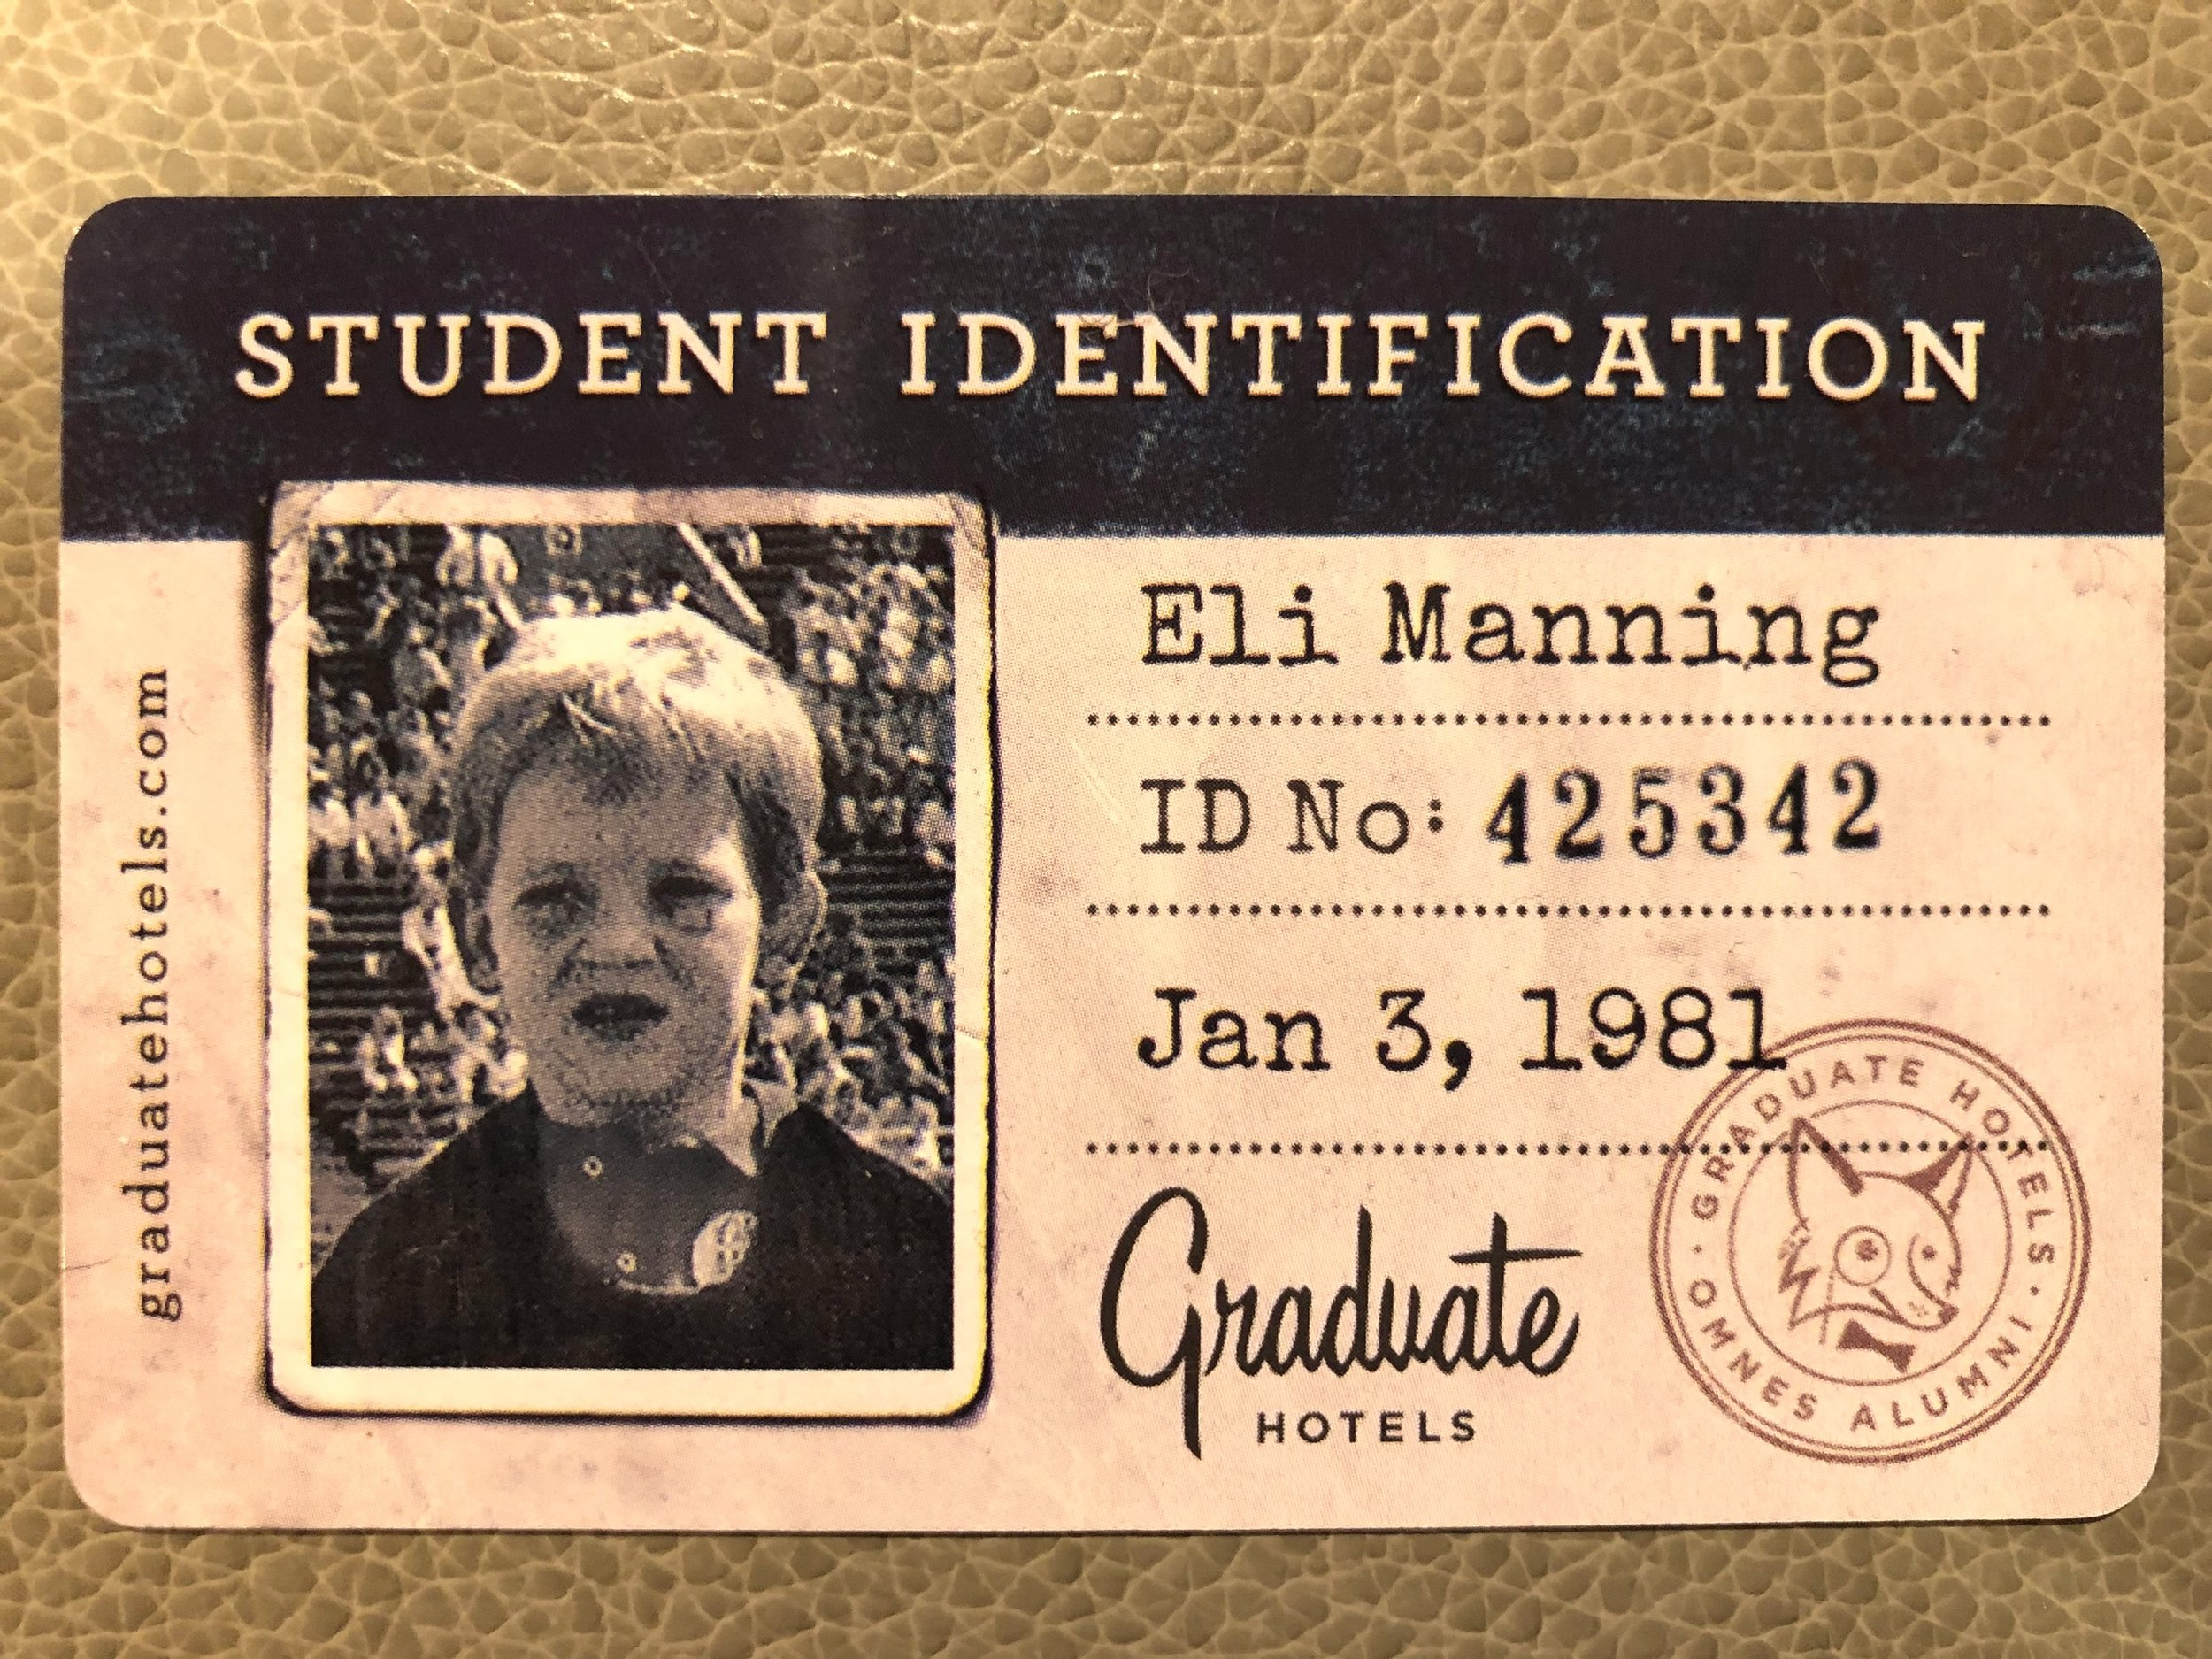 My room key. Seems Eli started college as a toddler. Makes his accomplishments as a quarterback all the more impressive.